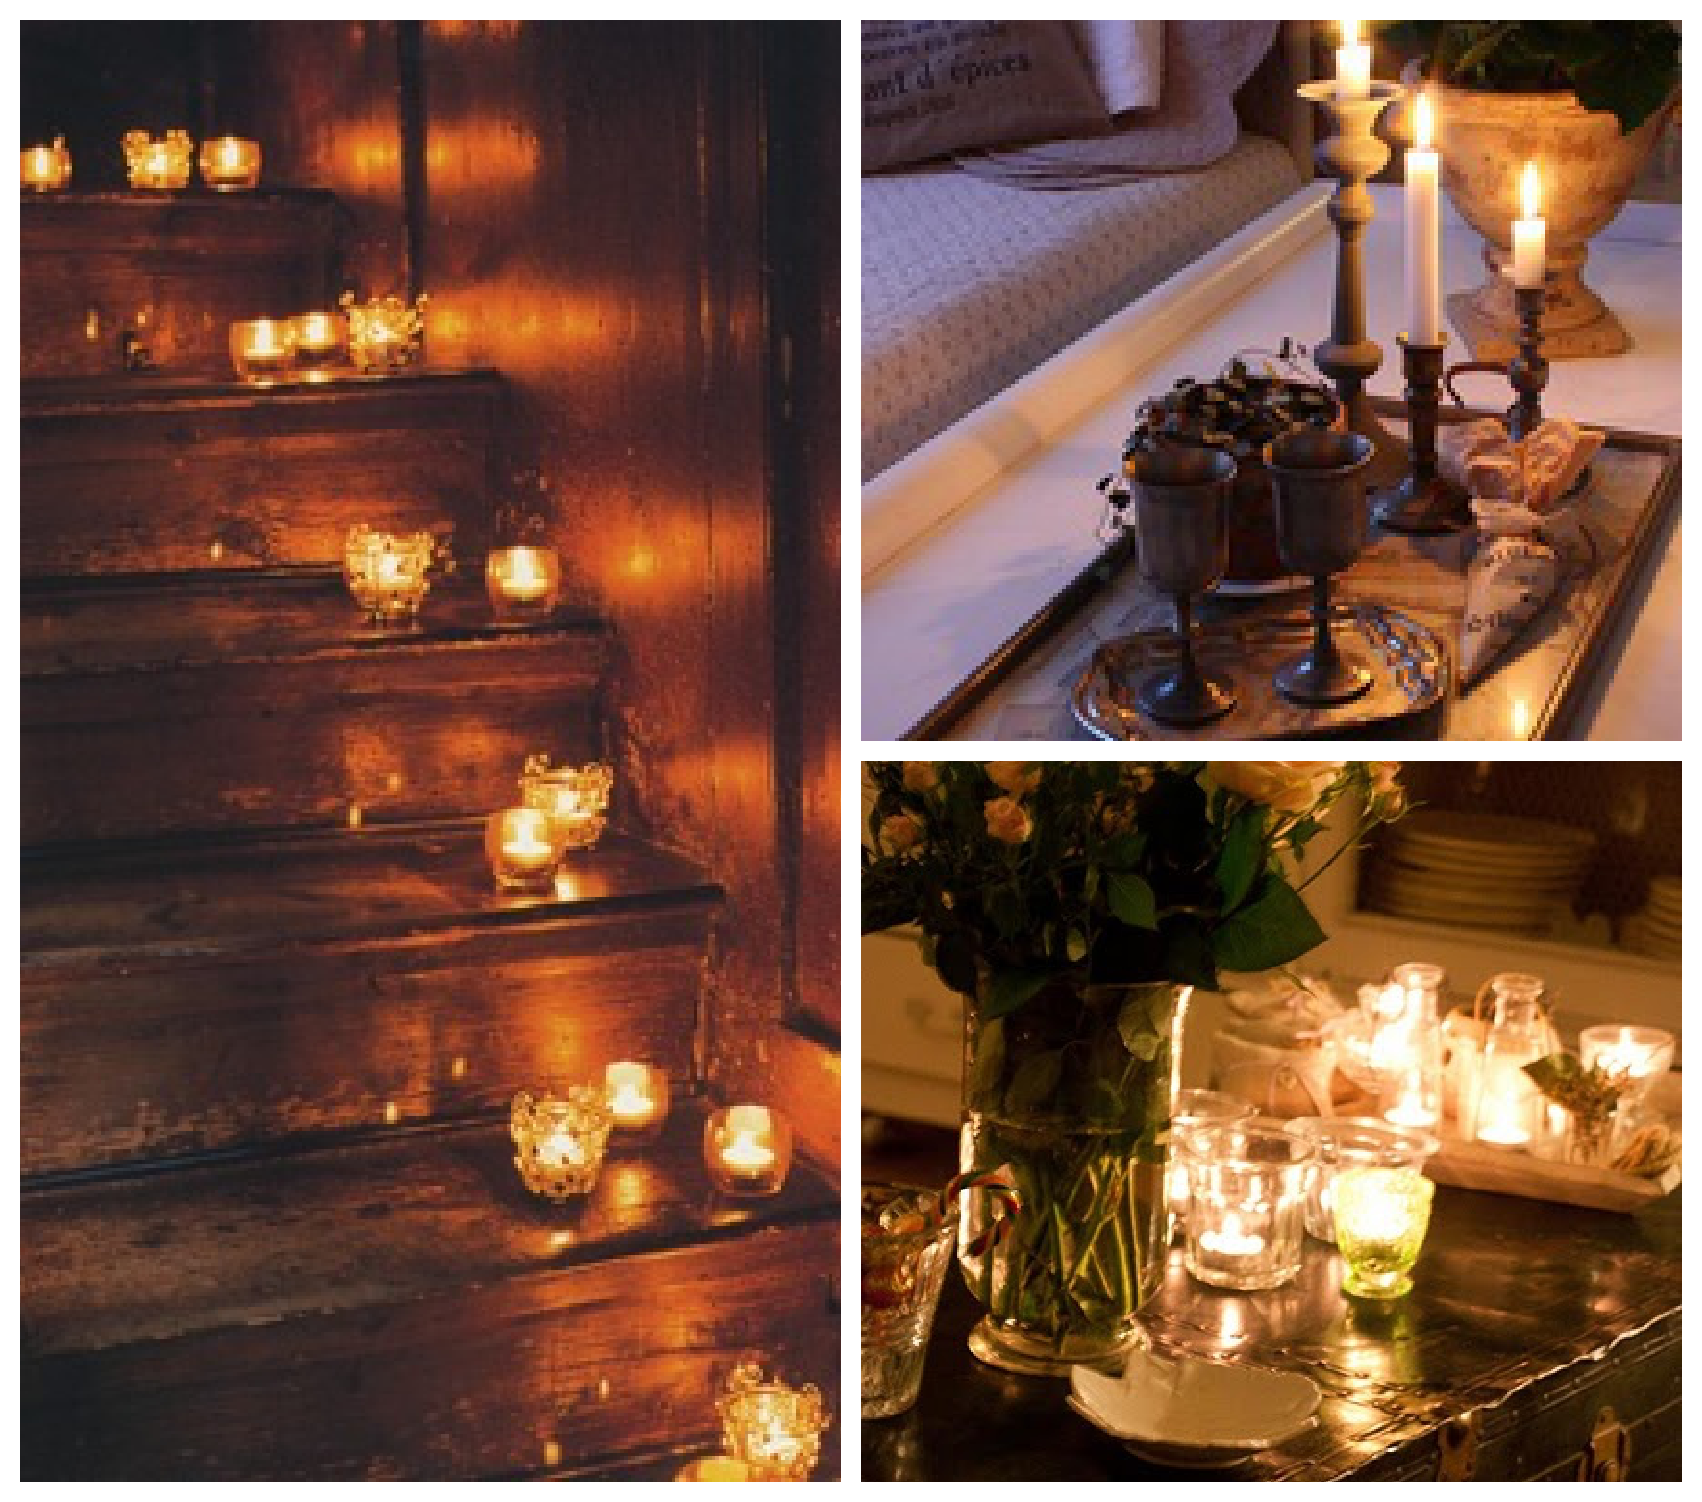 Candlelit Bedroom Google Search Romantic Candle Lit Bedroom Cozy Candlelight Candlelight